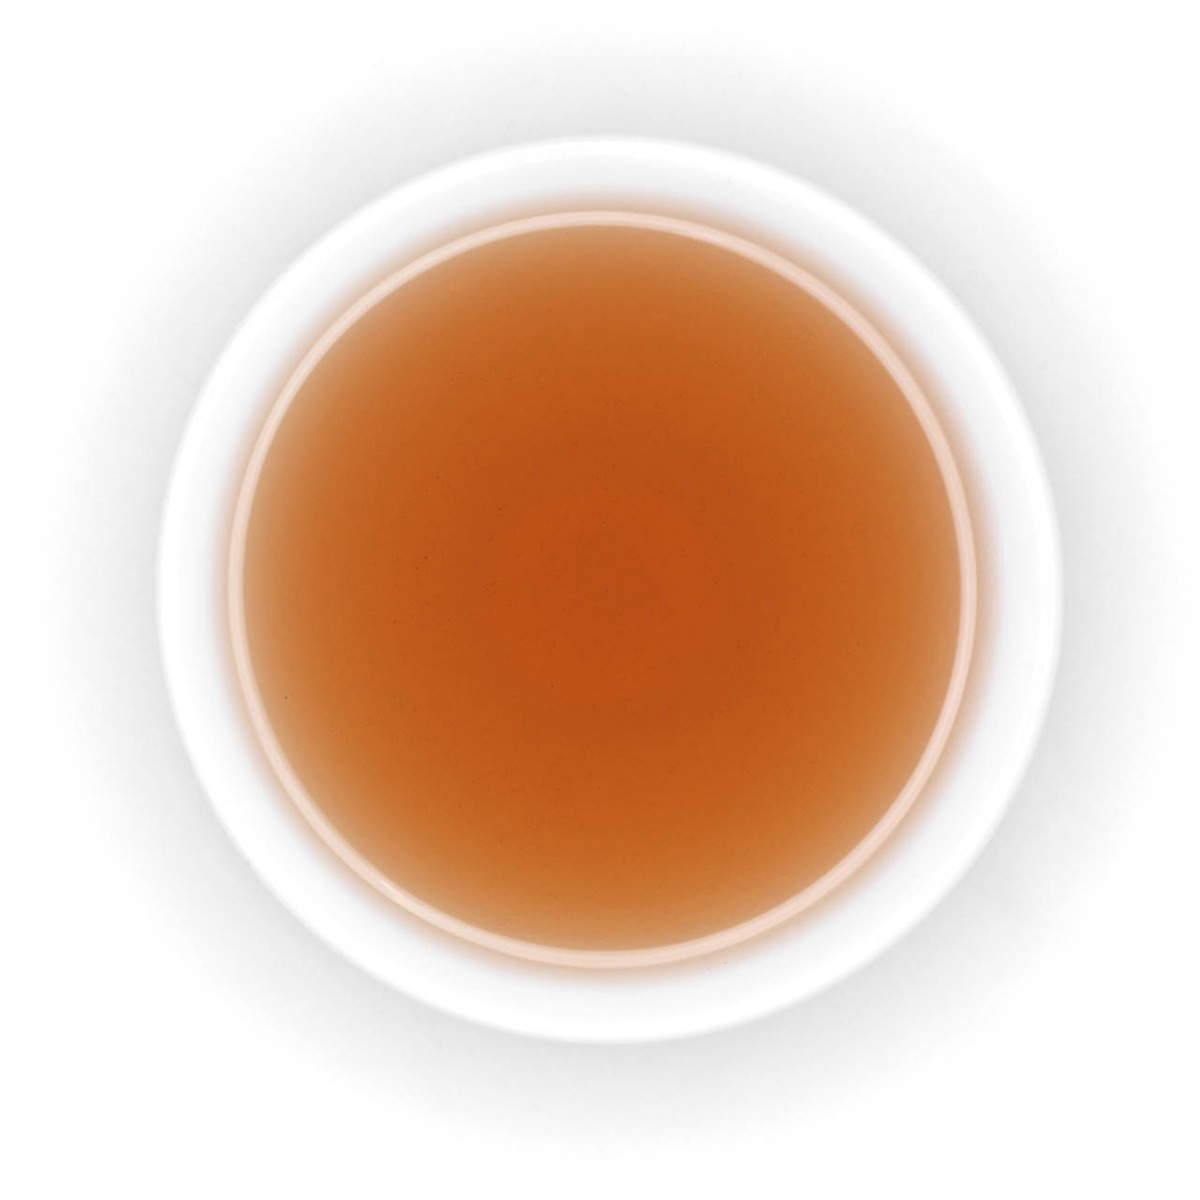 Brave New Earl - Earl Grey - Style Caddy - 90g